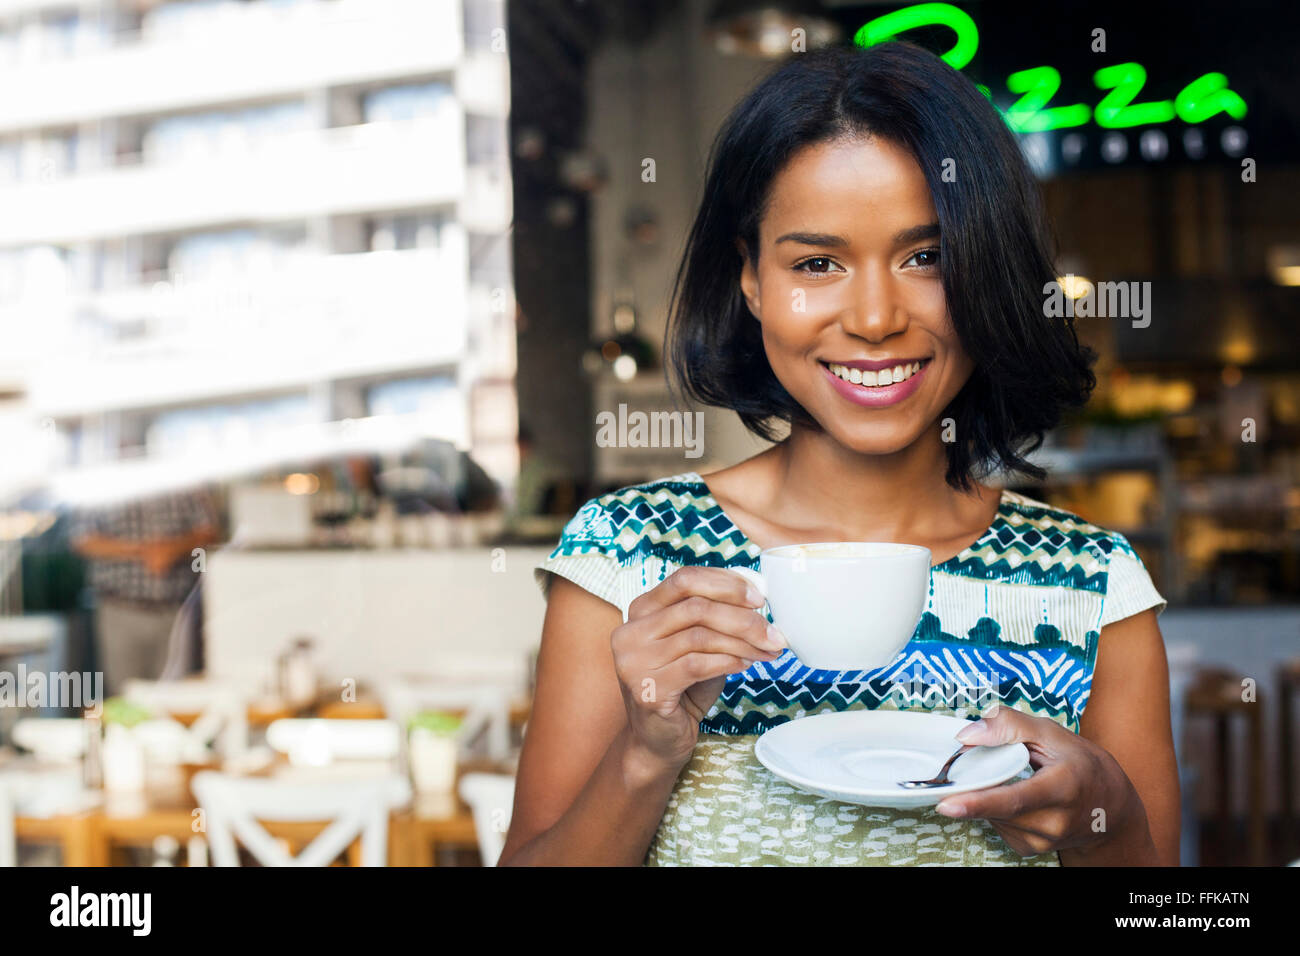 Mixed race woman takes a coffee break - Stock Image